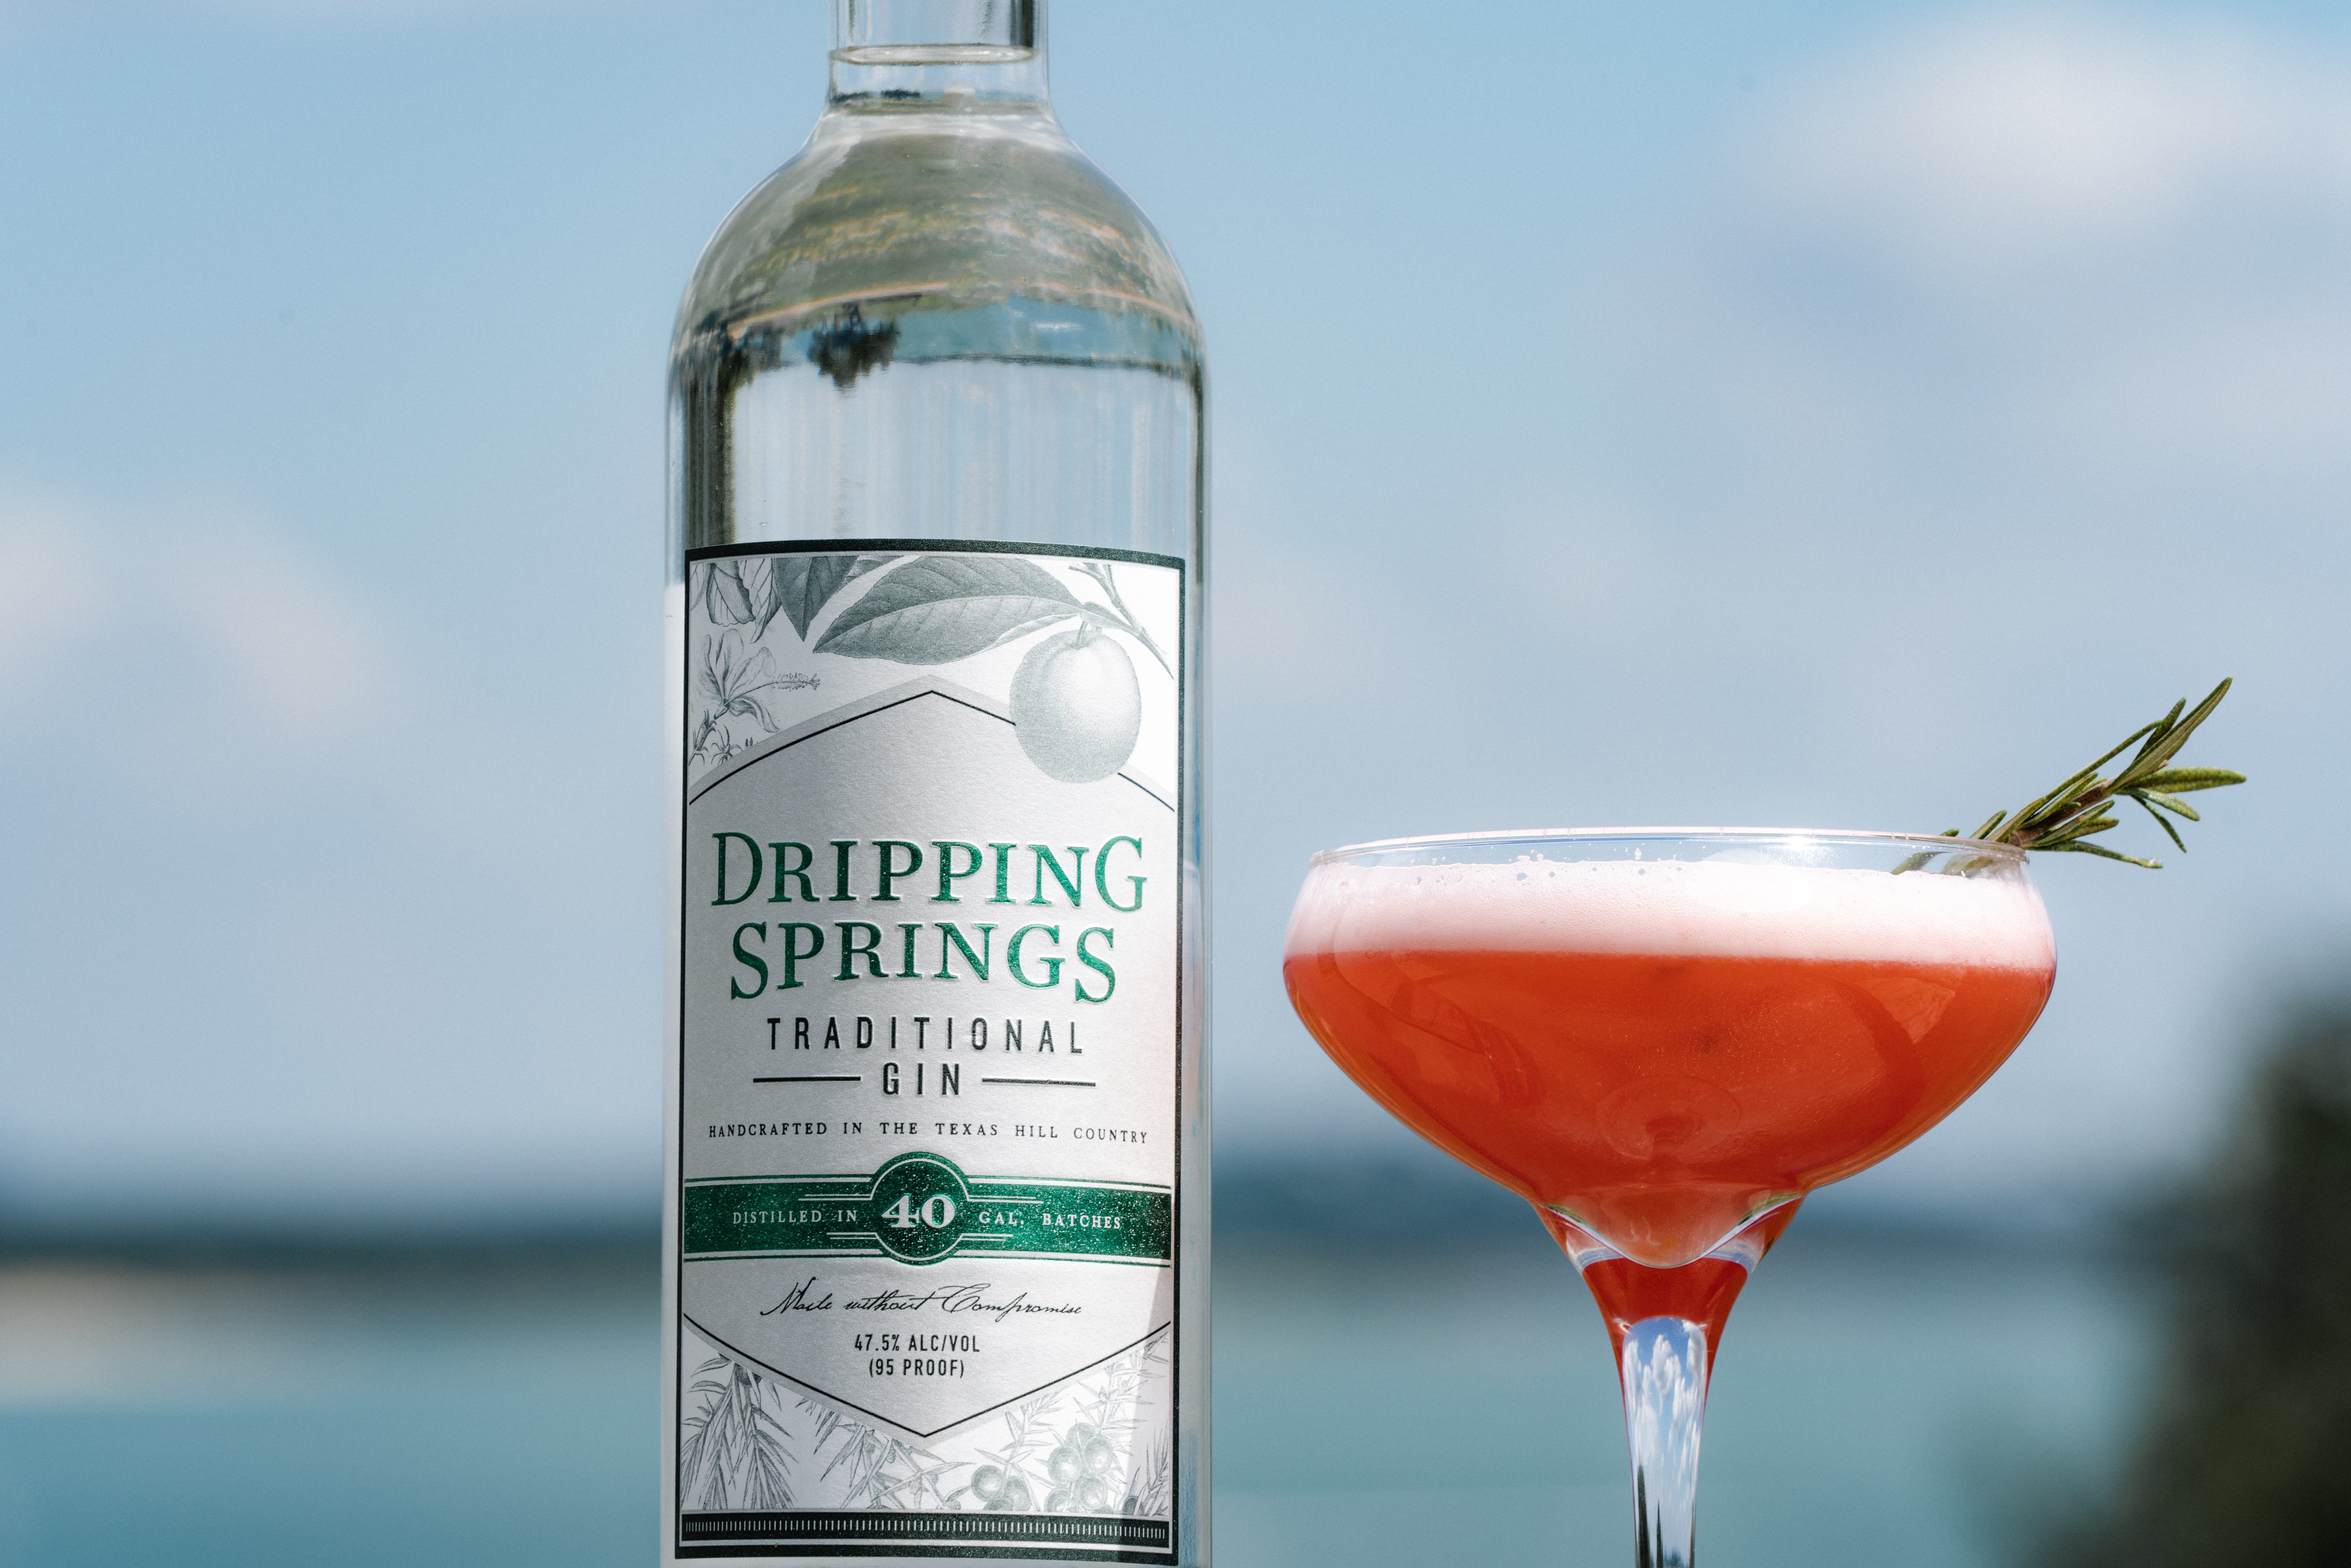 Dripping Springs Traditional Gin featured in the Snowmelt Sour recipe